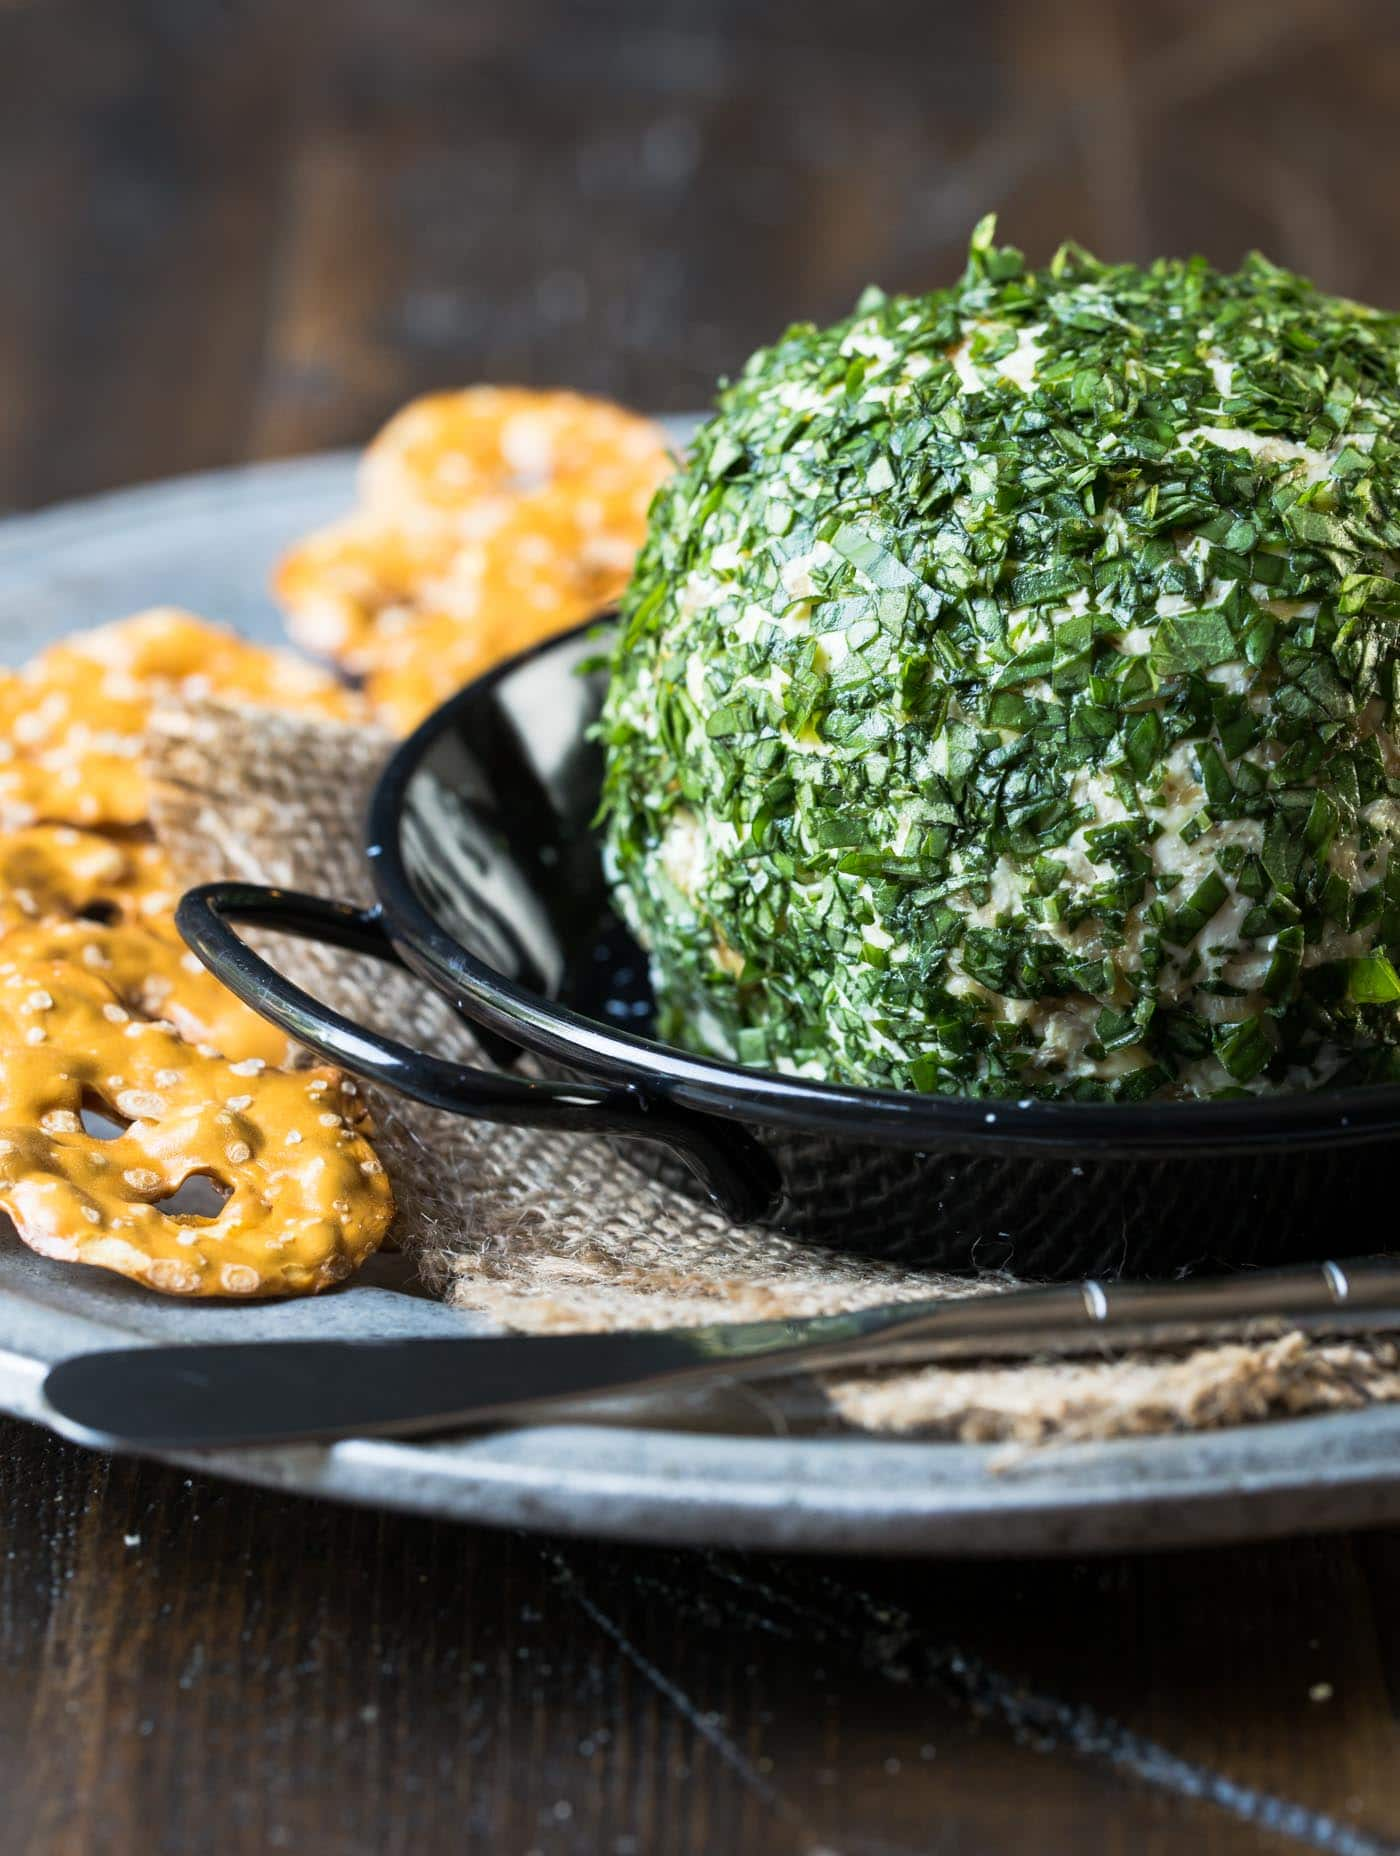 Caramelized Vidalia onions are the key to this rich and flavorful Goat Cheese, Basil & Vidalia Onion Cheese Ball - a crowd pleasing appetizer for everyone!